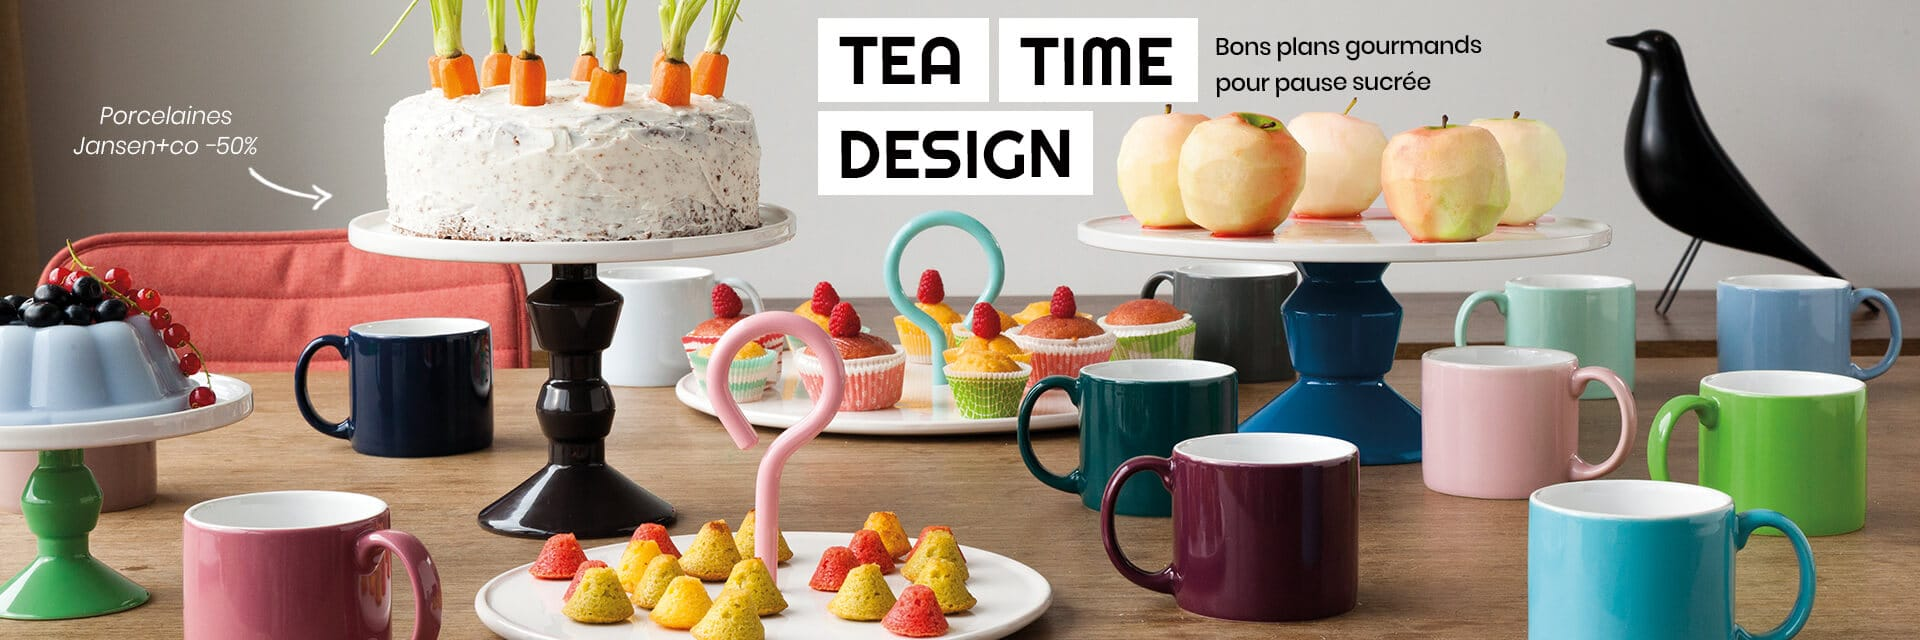 tea time design zeeloft